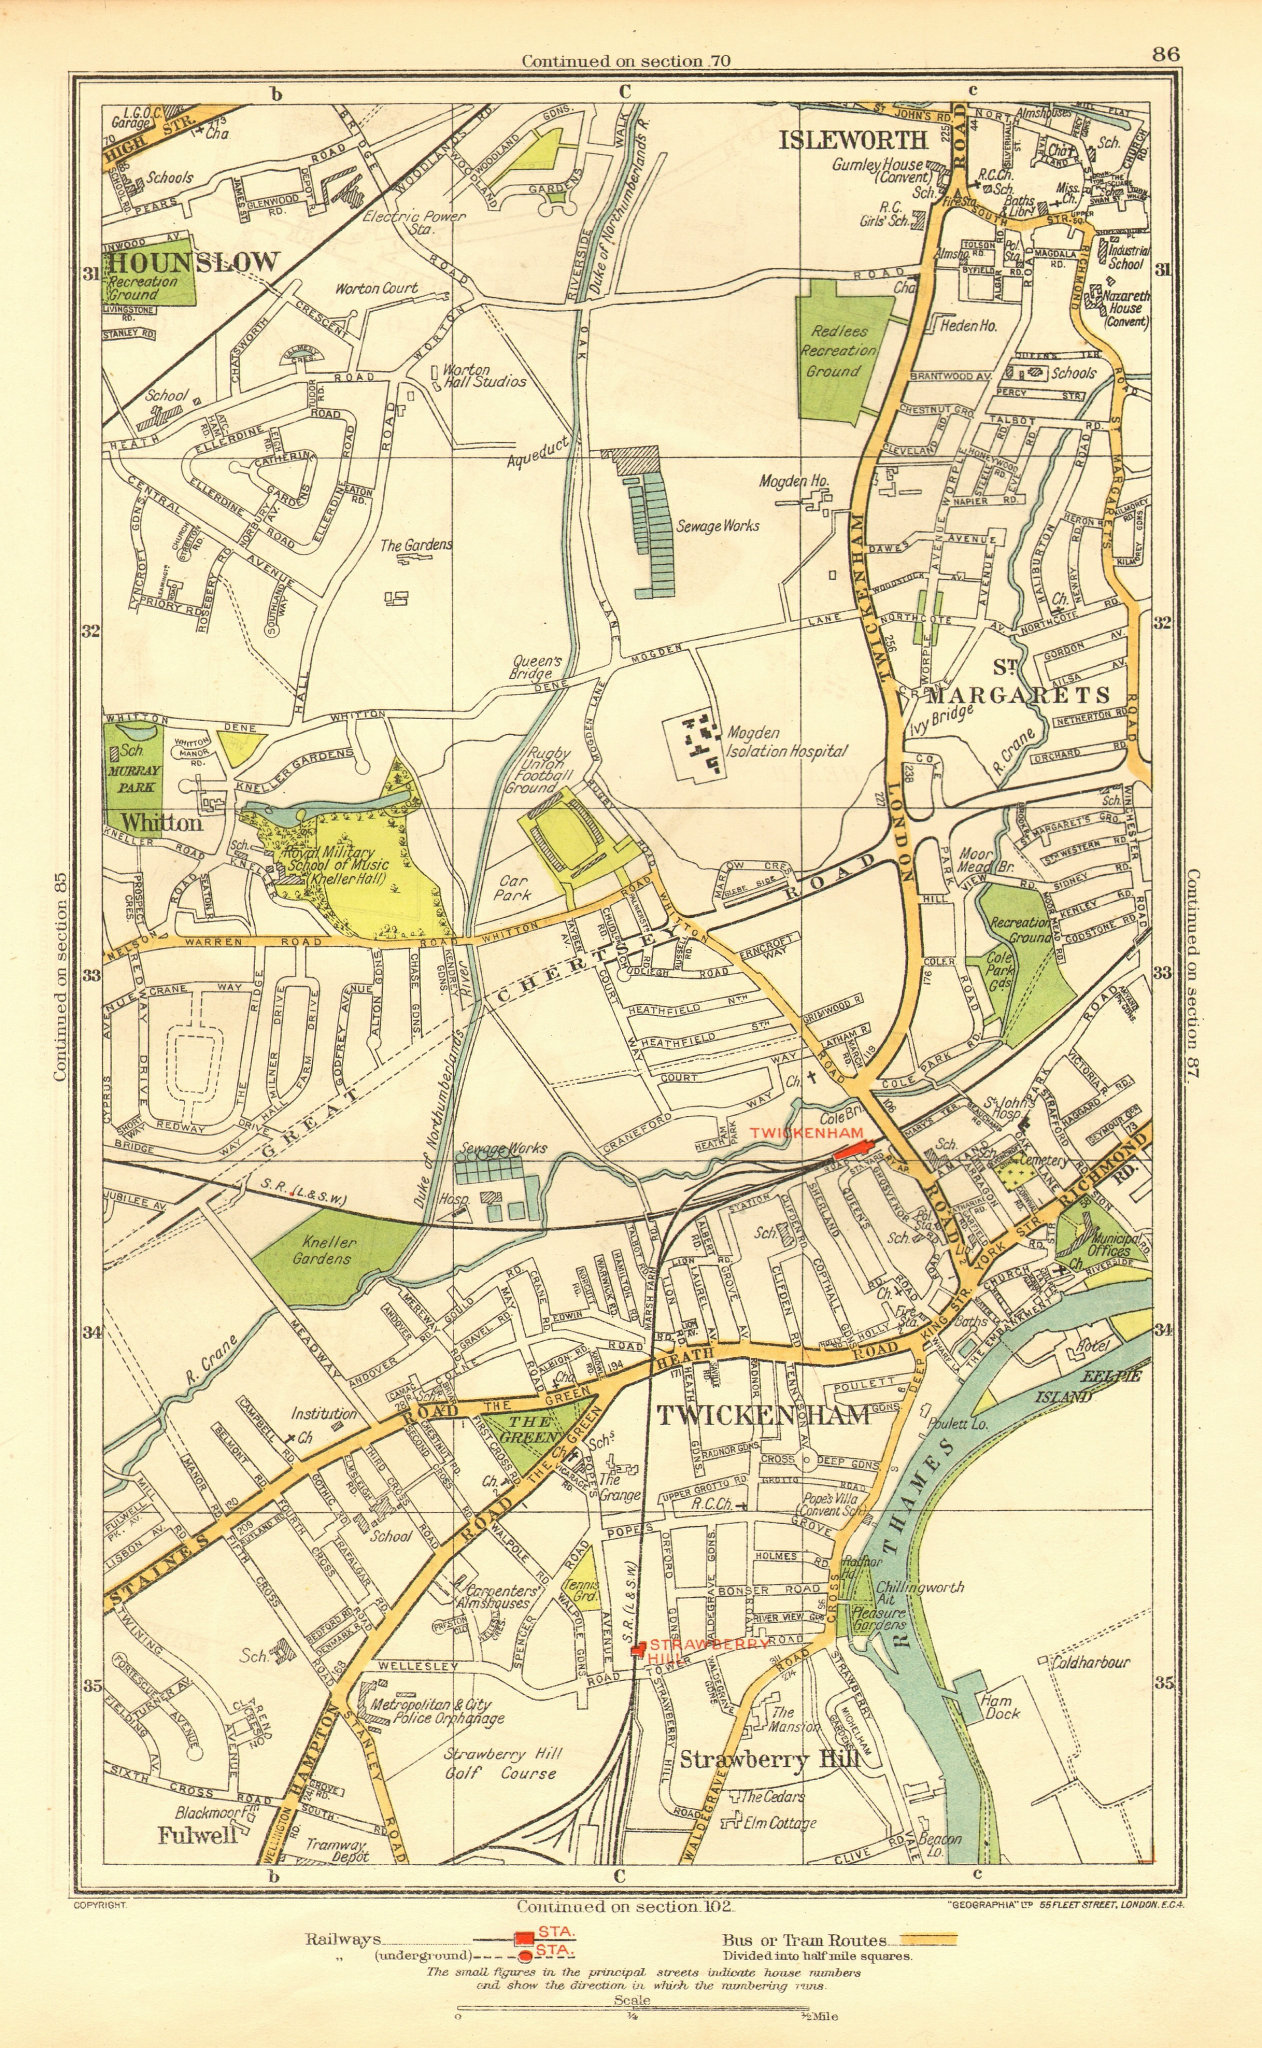 Associate Product TWICKENHAM. Isleworth Hounslow Strawberry Hill Fulwell; Middlesex 1937 old map